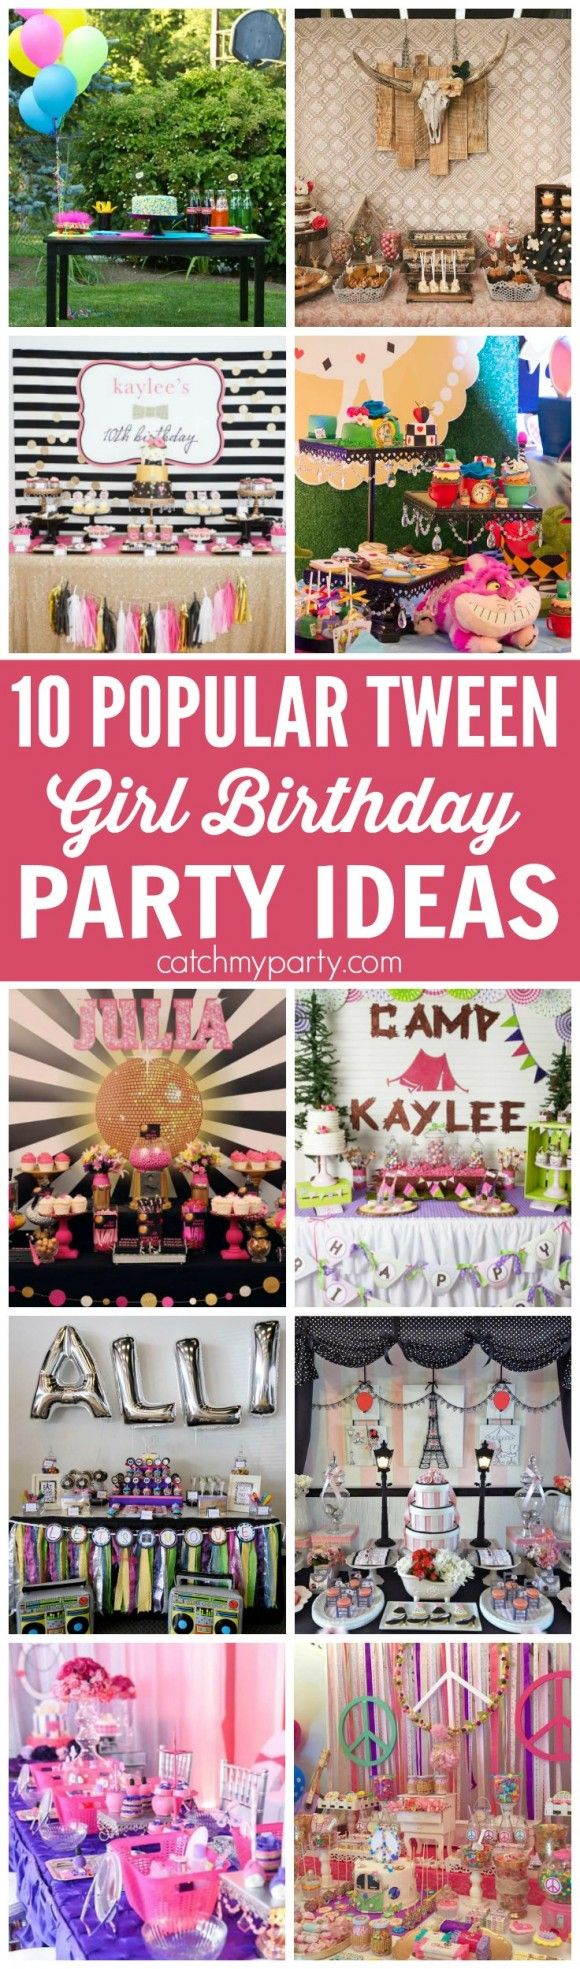 10 popular tween girl birthday party ideas | pink party ideas | girl